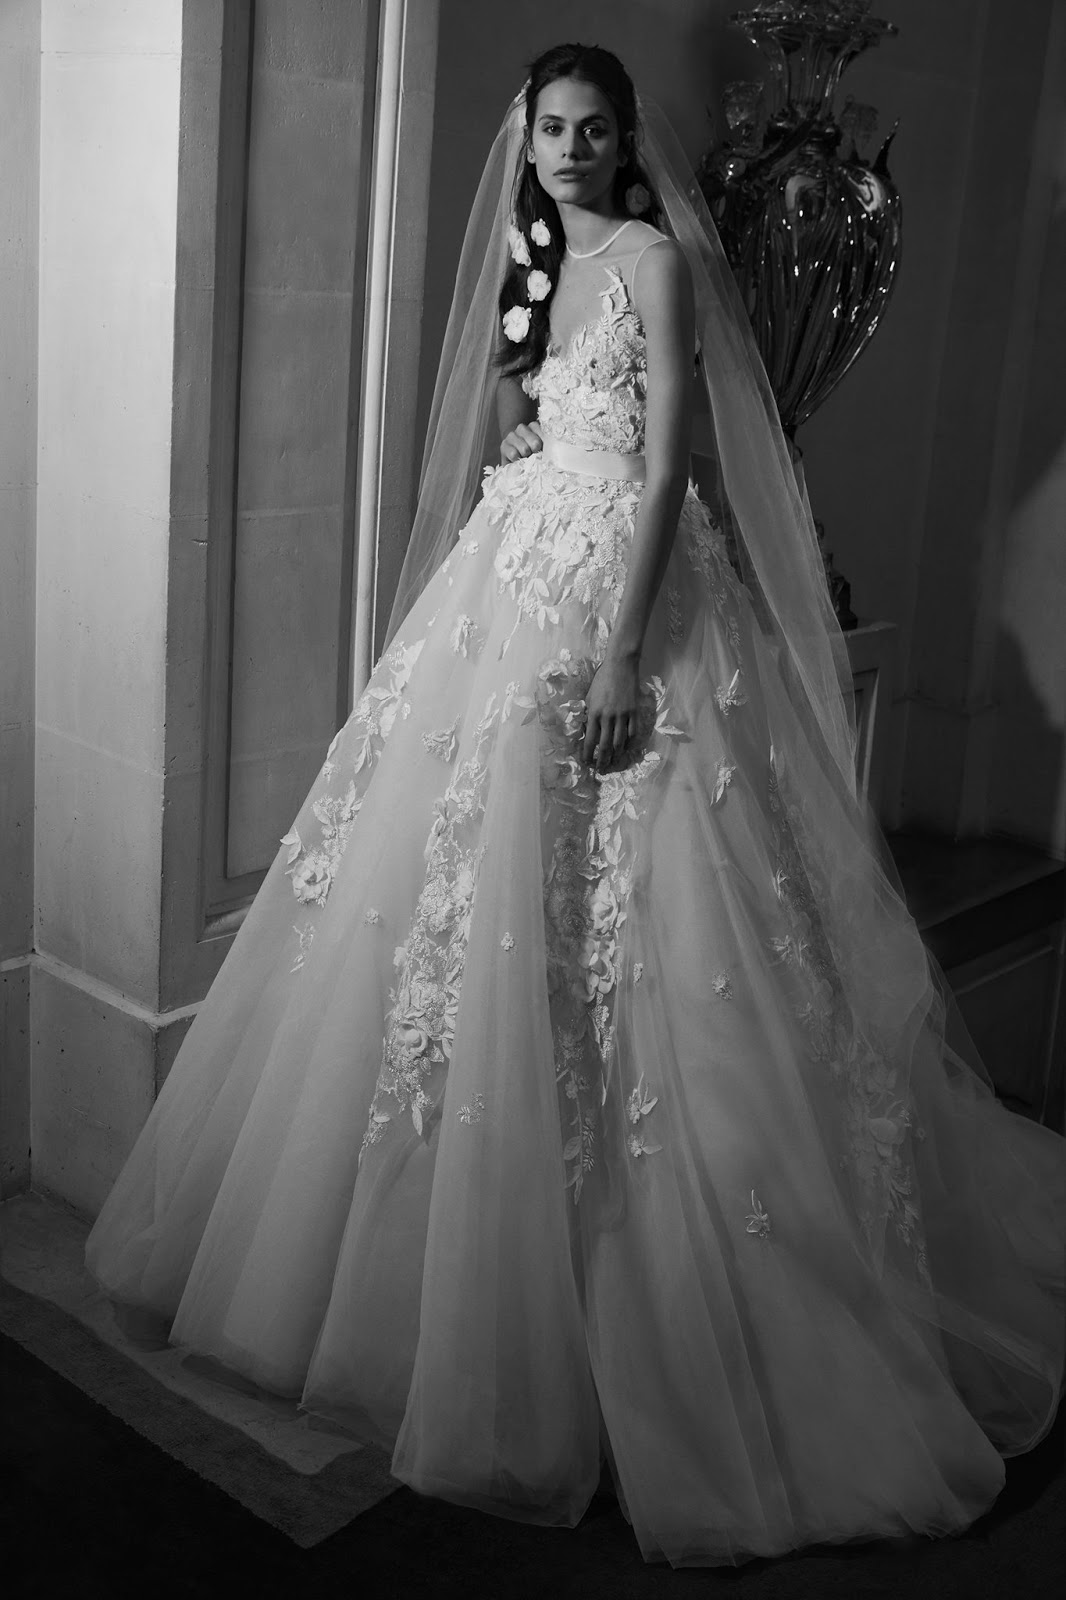 Elie Saab Ready-to-Wear Bridal Spring 2019 #BalDeVienne